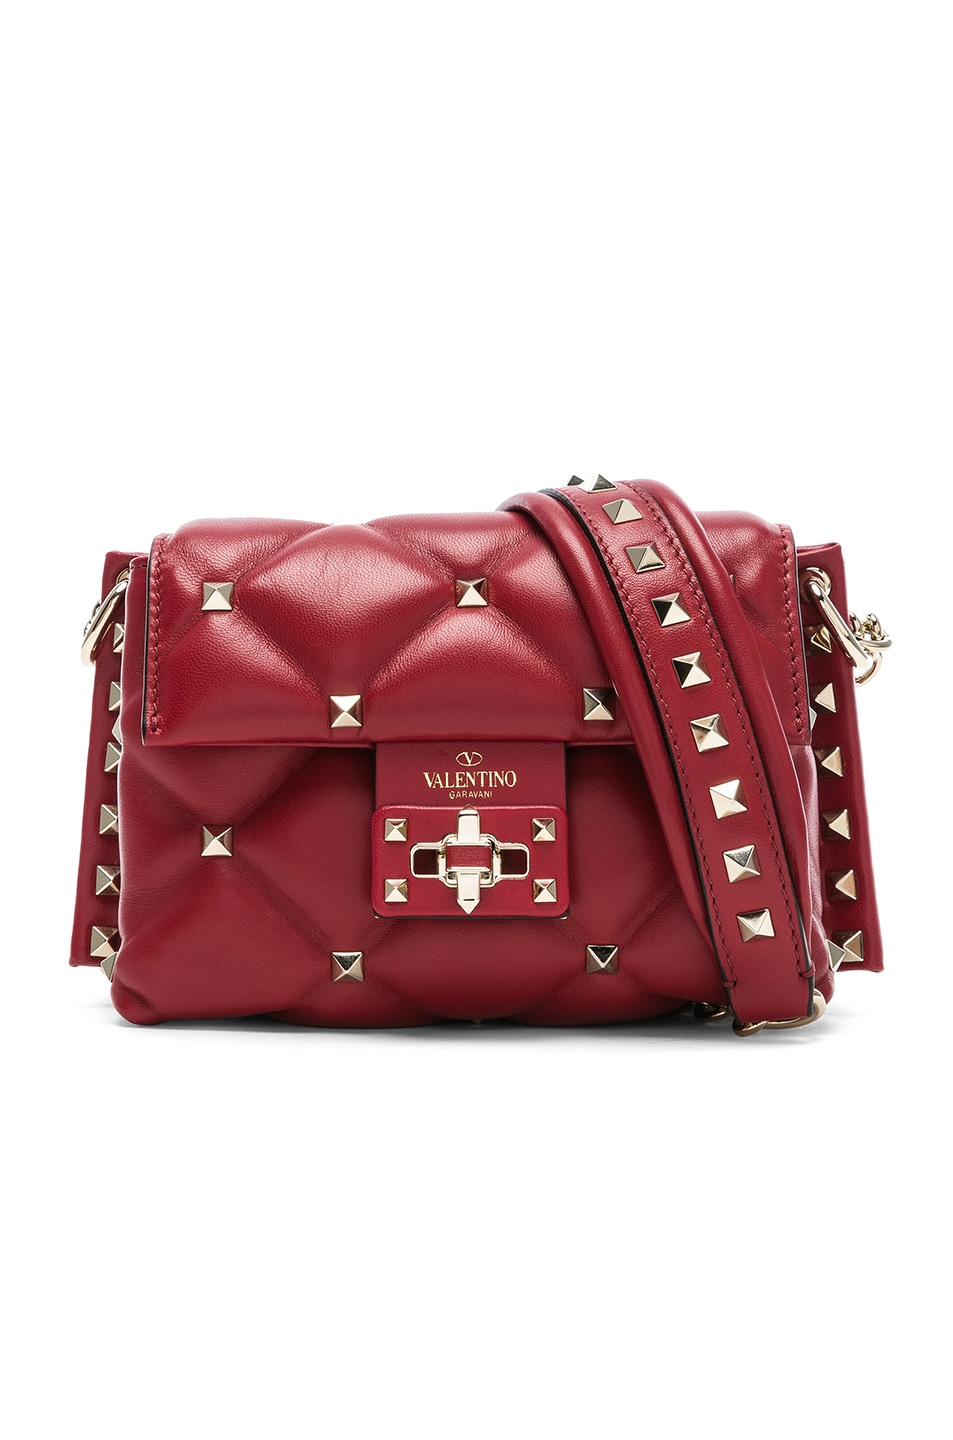 acbafc58b4 Image 1 of Valentino Mini Candystud Shoulder Bag in Red